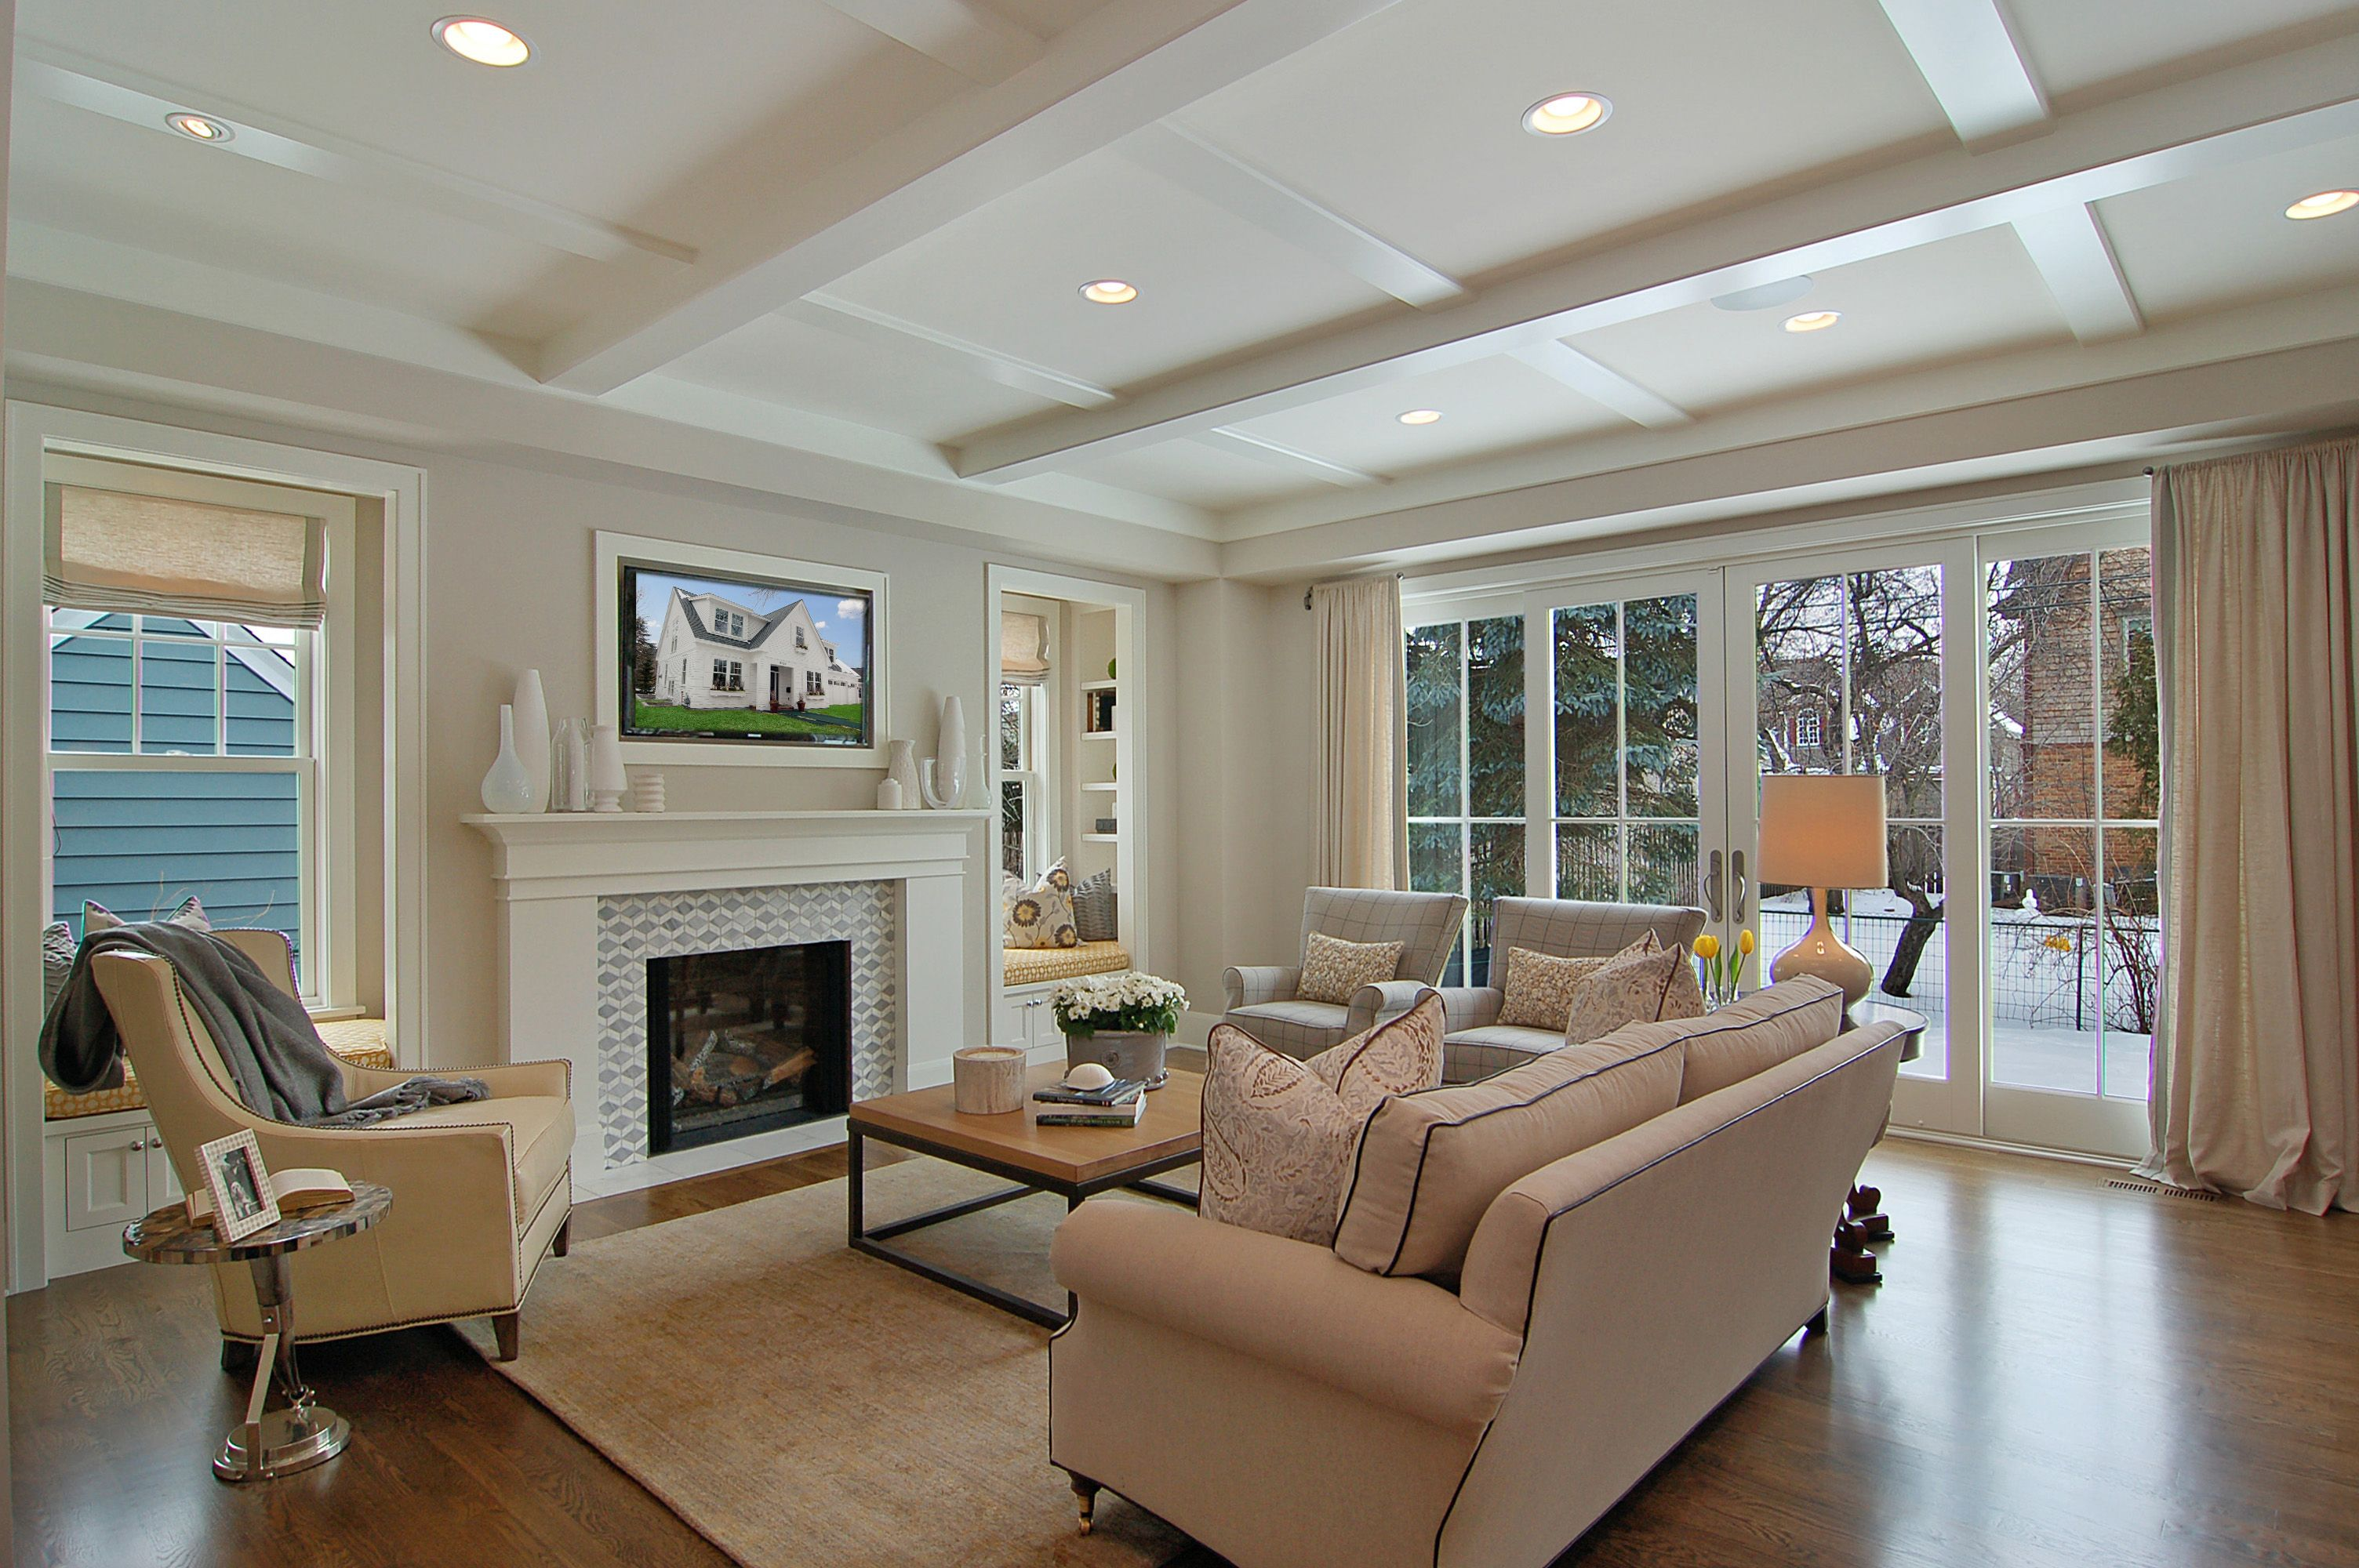 Living Room Vs Family Room What Is The Difference Livingroom Layout Traditional Family Rooms Family Room